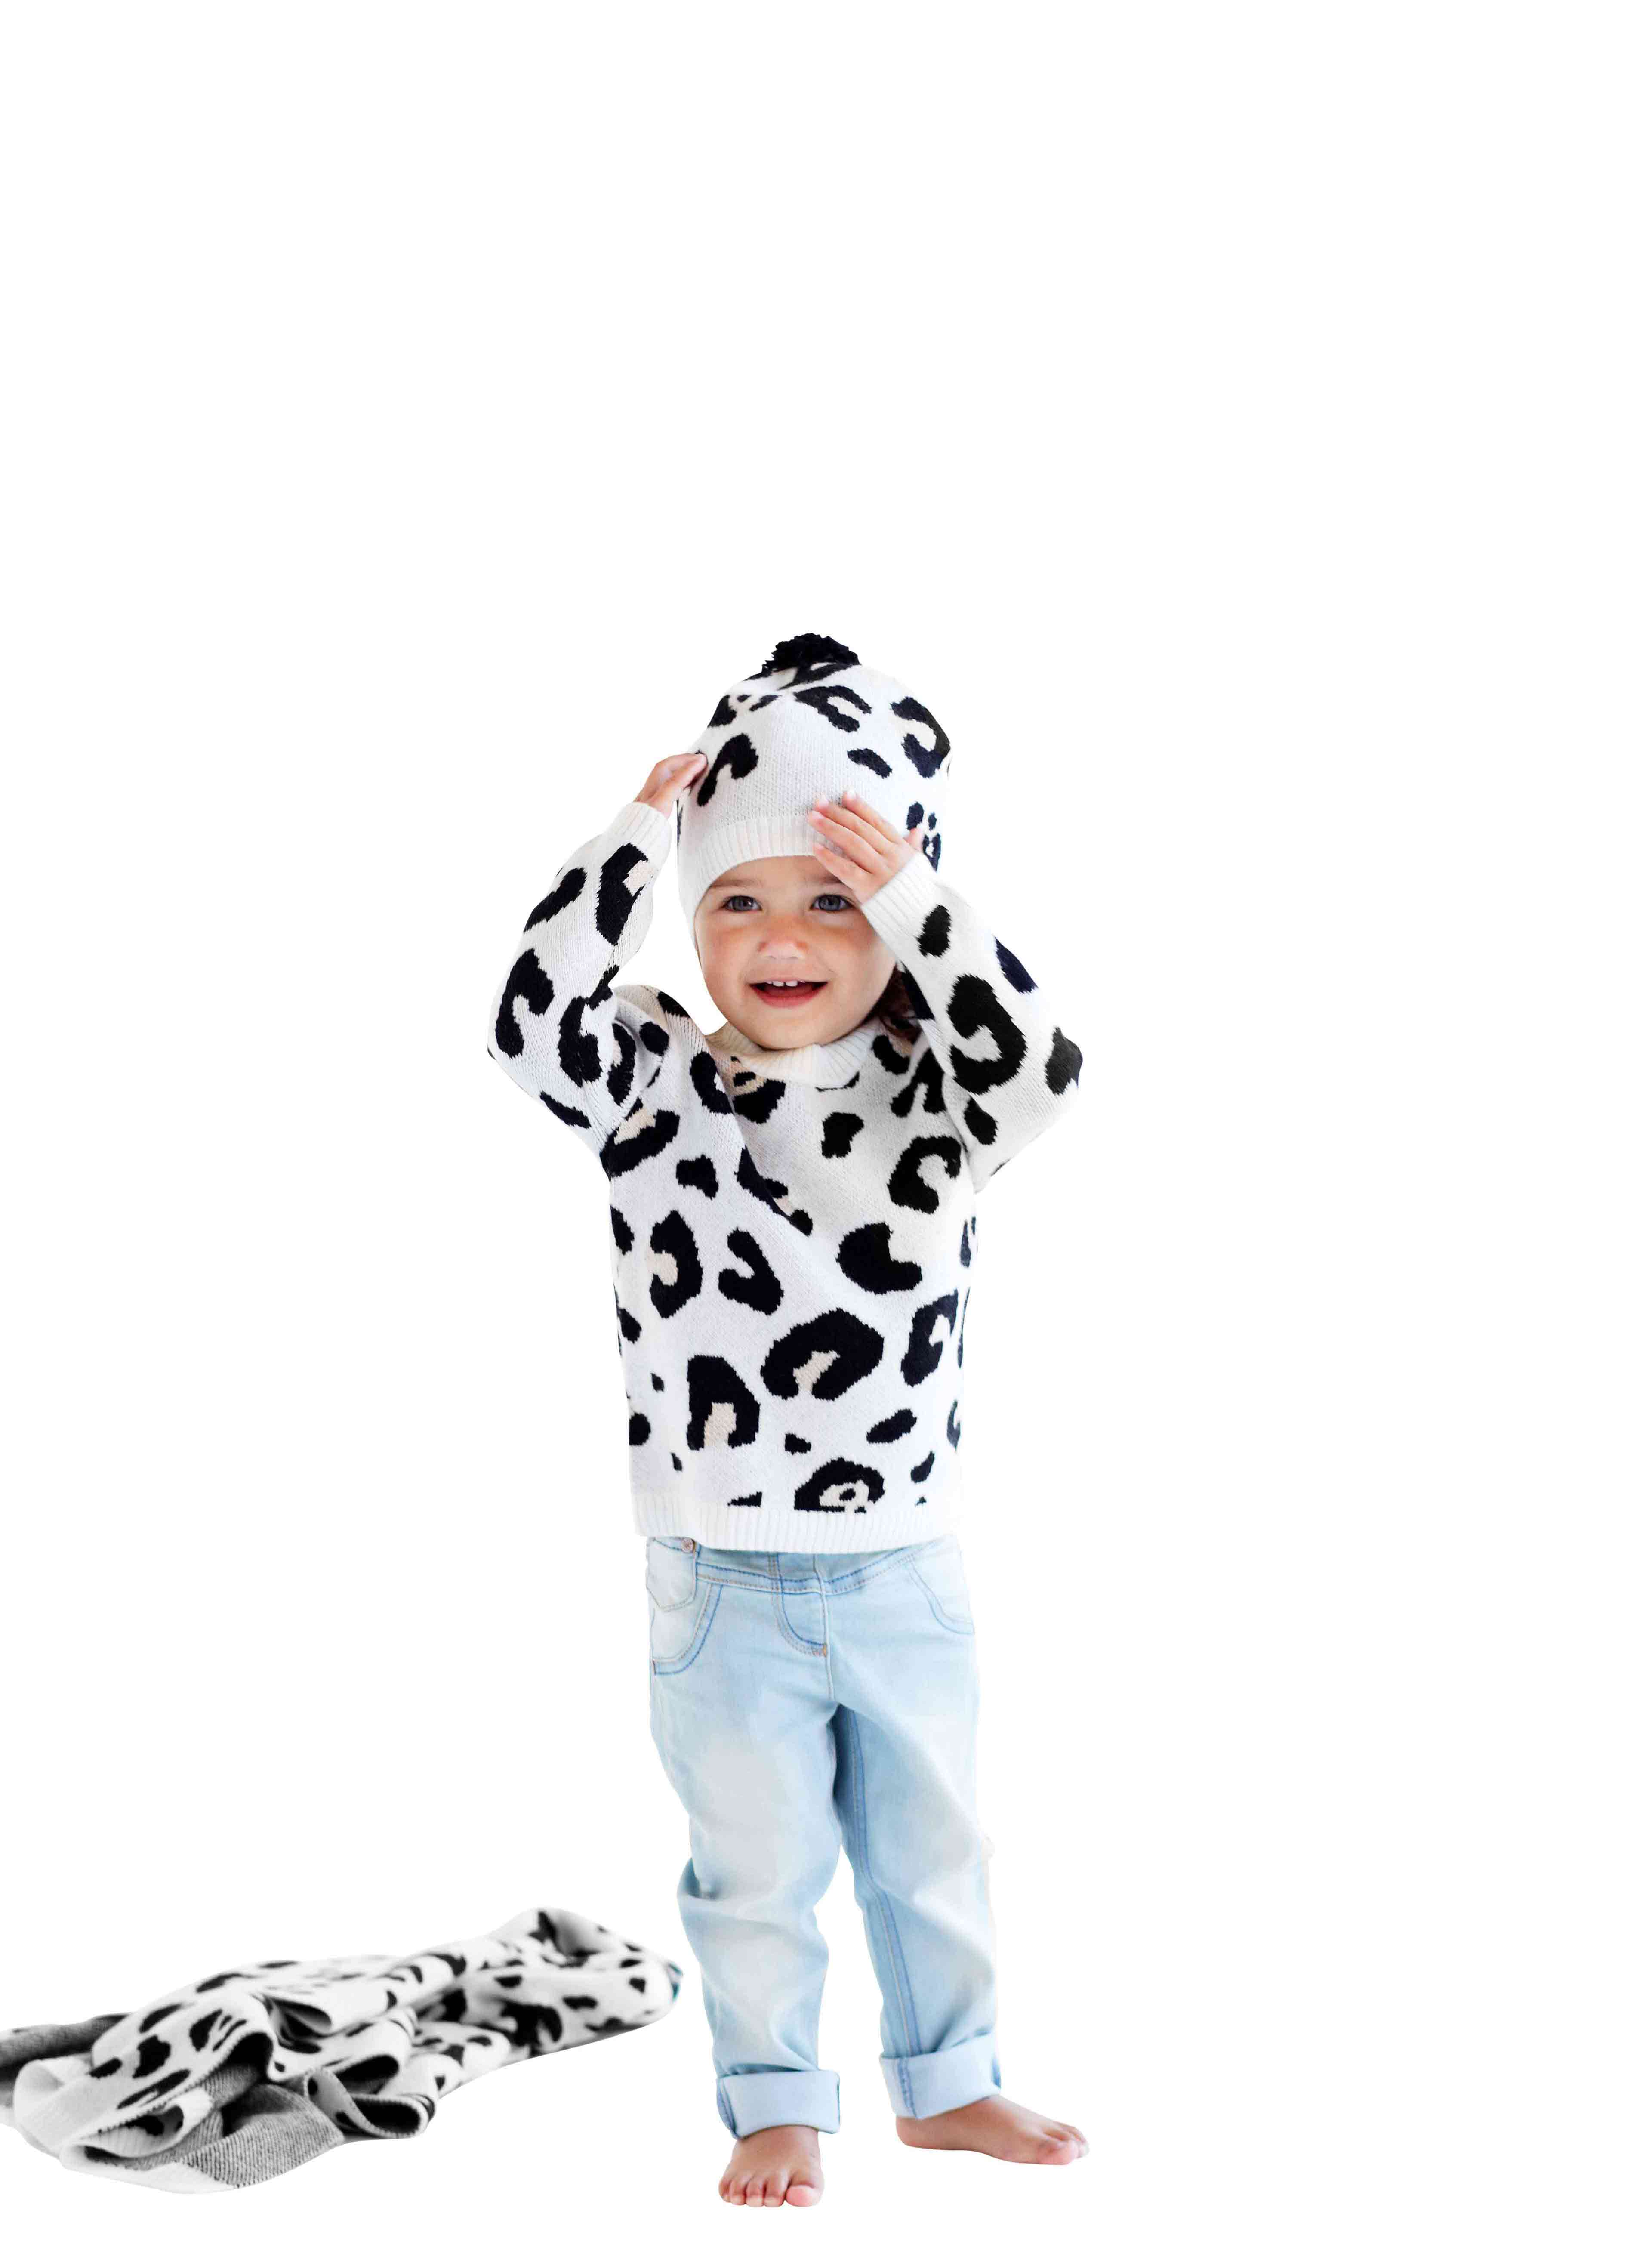 6426e047f86 ... Atelier-Child FW15 The-Leopard-Caramel-Sweater Hi-Res Deepetched ...